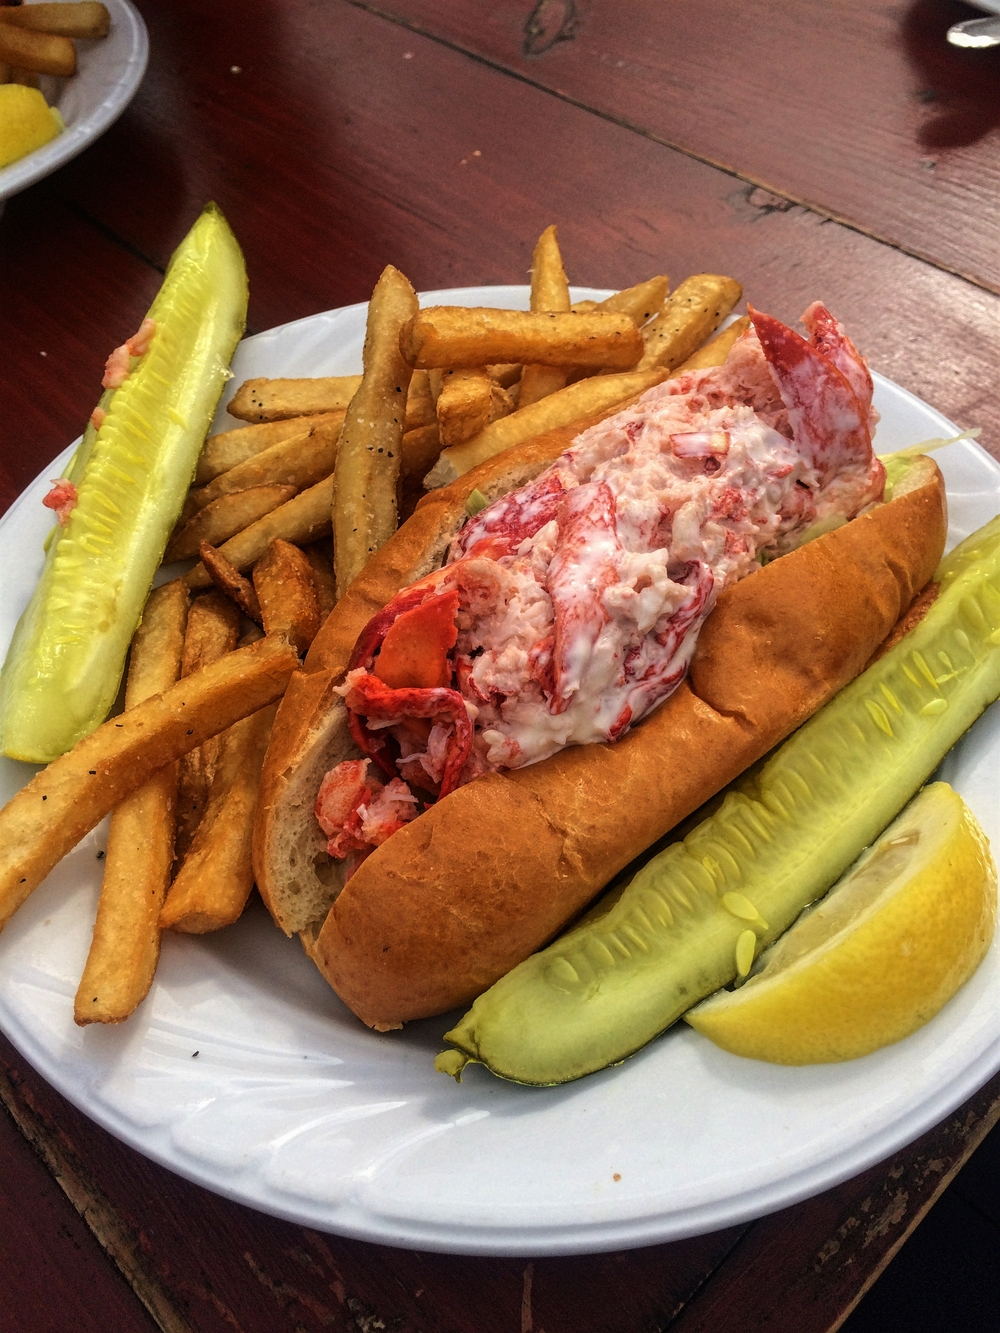 You can tell this is Alexandra's plate thanks to two things. 1: mayonnaise on the lobster roll. 2. extra pickles.